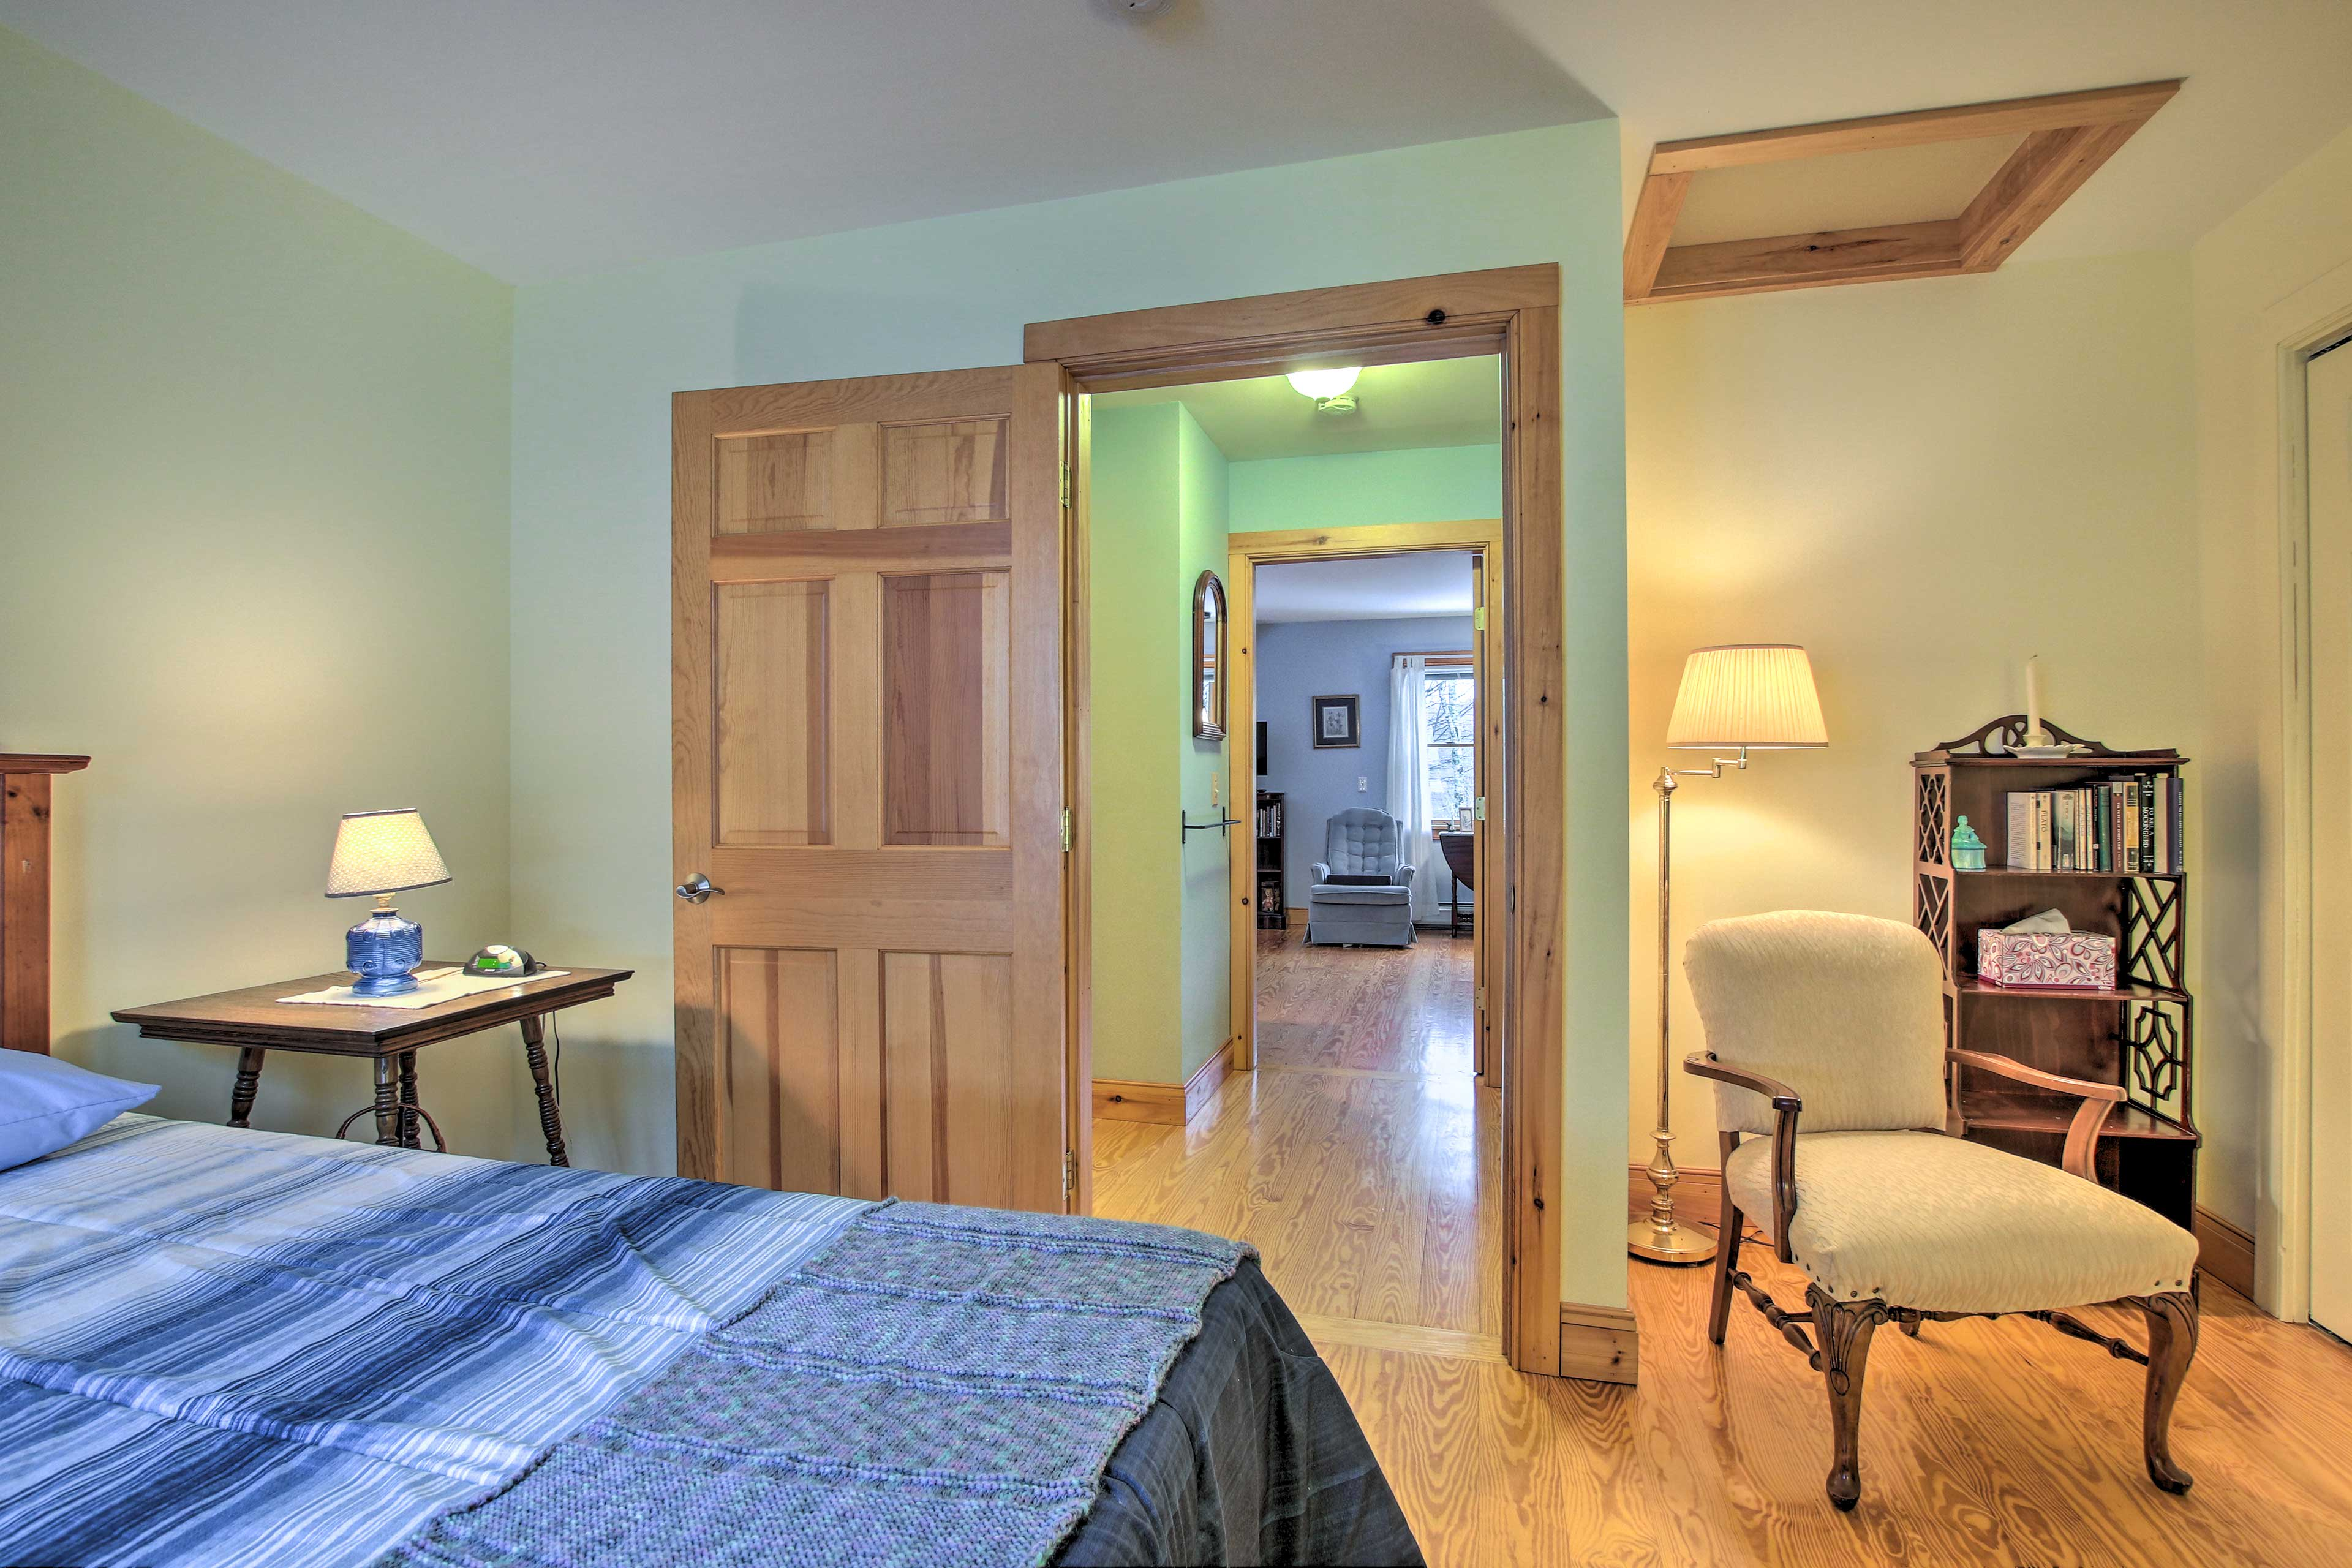 The bedroom is located on the main floor.